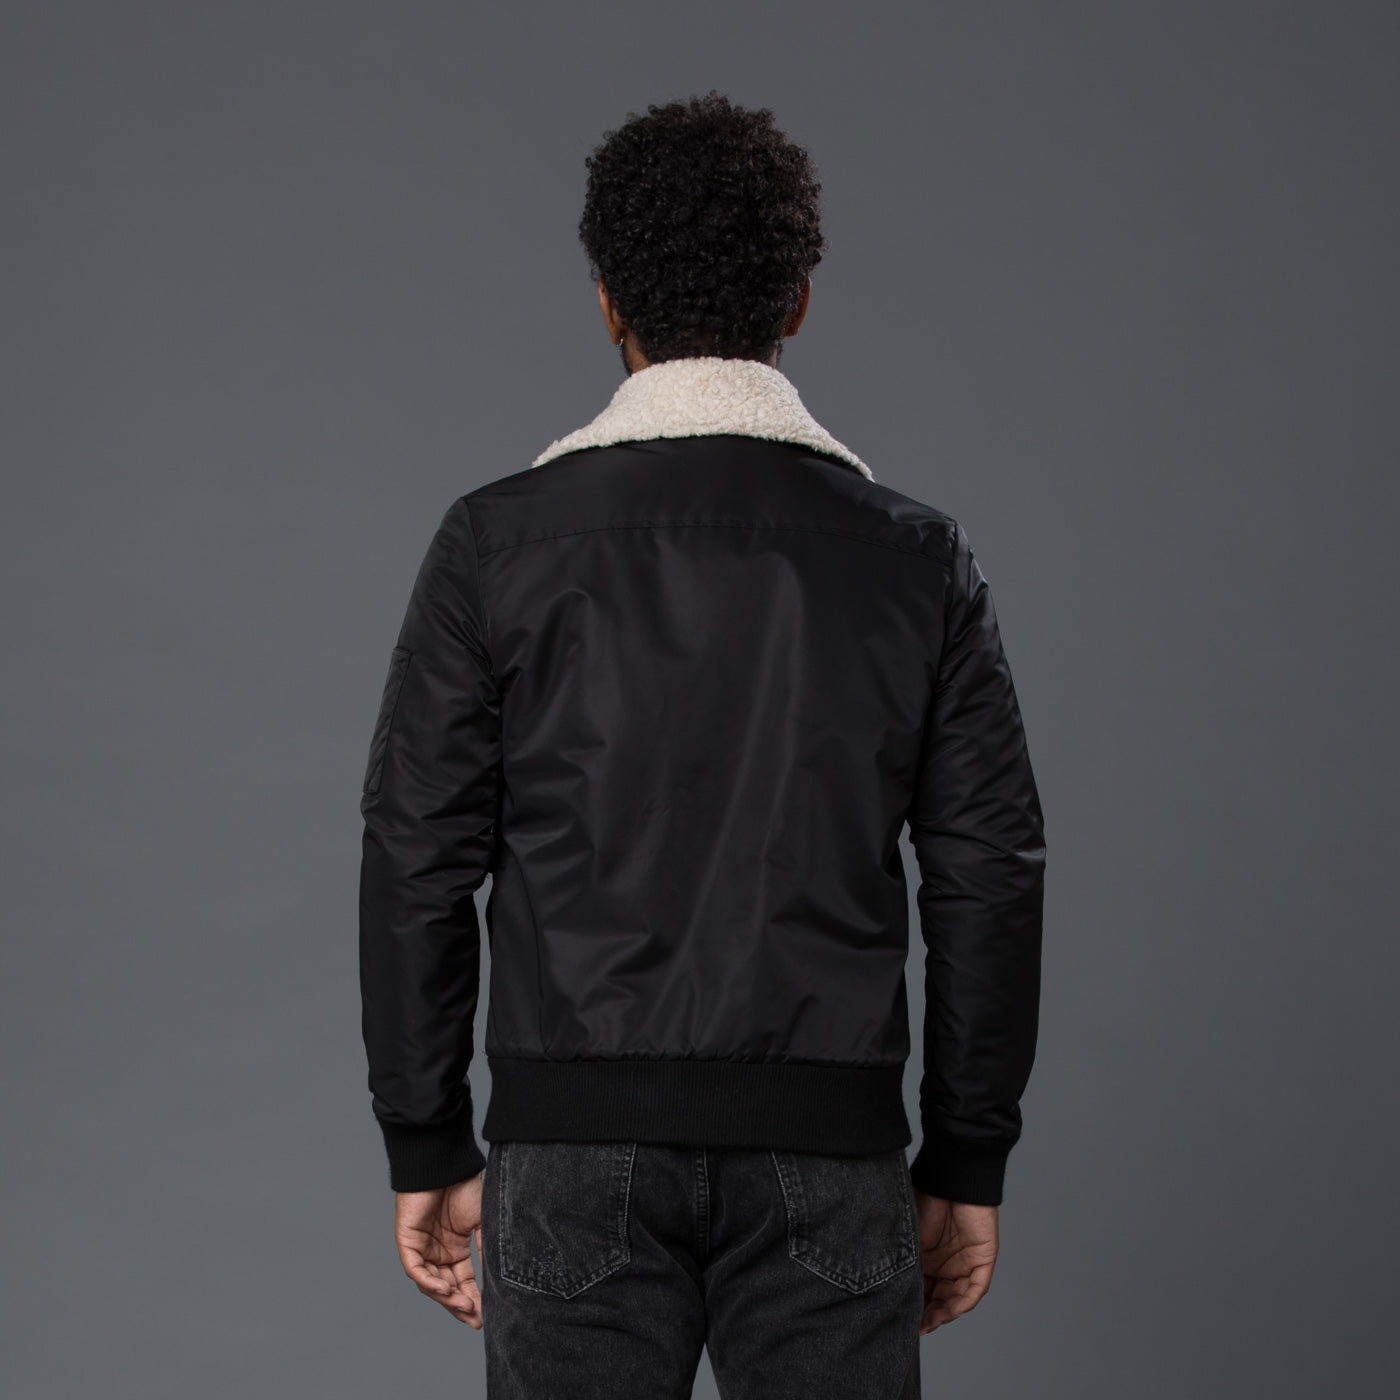 Krammer & Stoudt Black Shearling Aviator Jacket